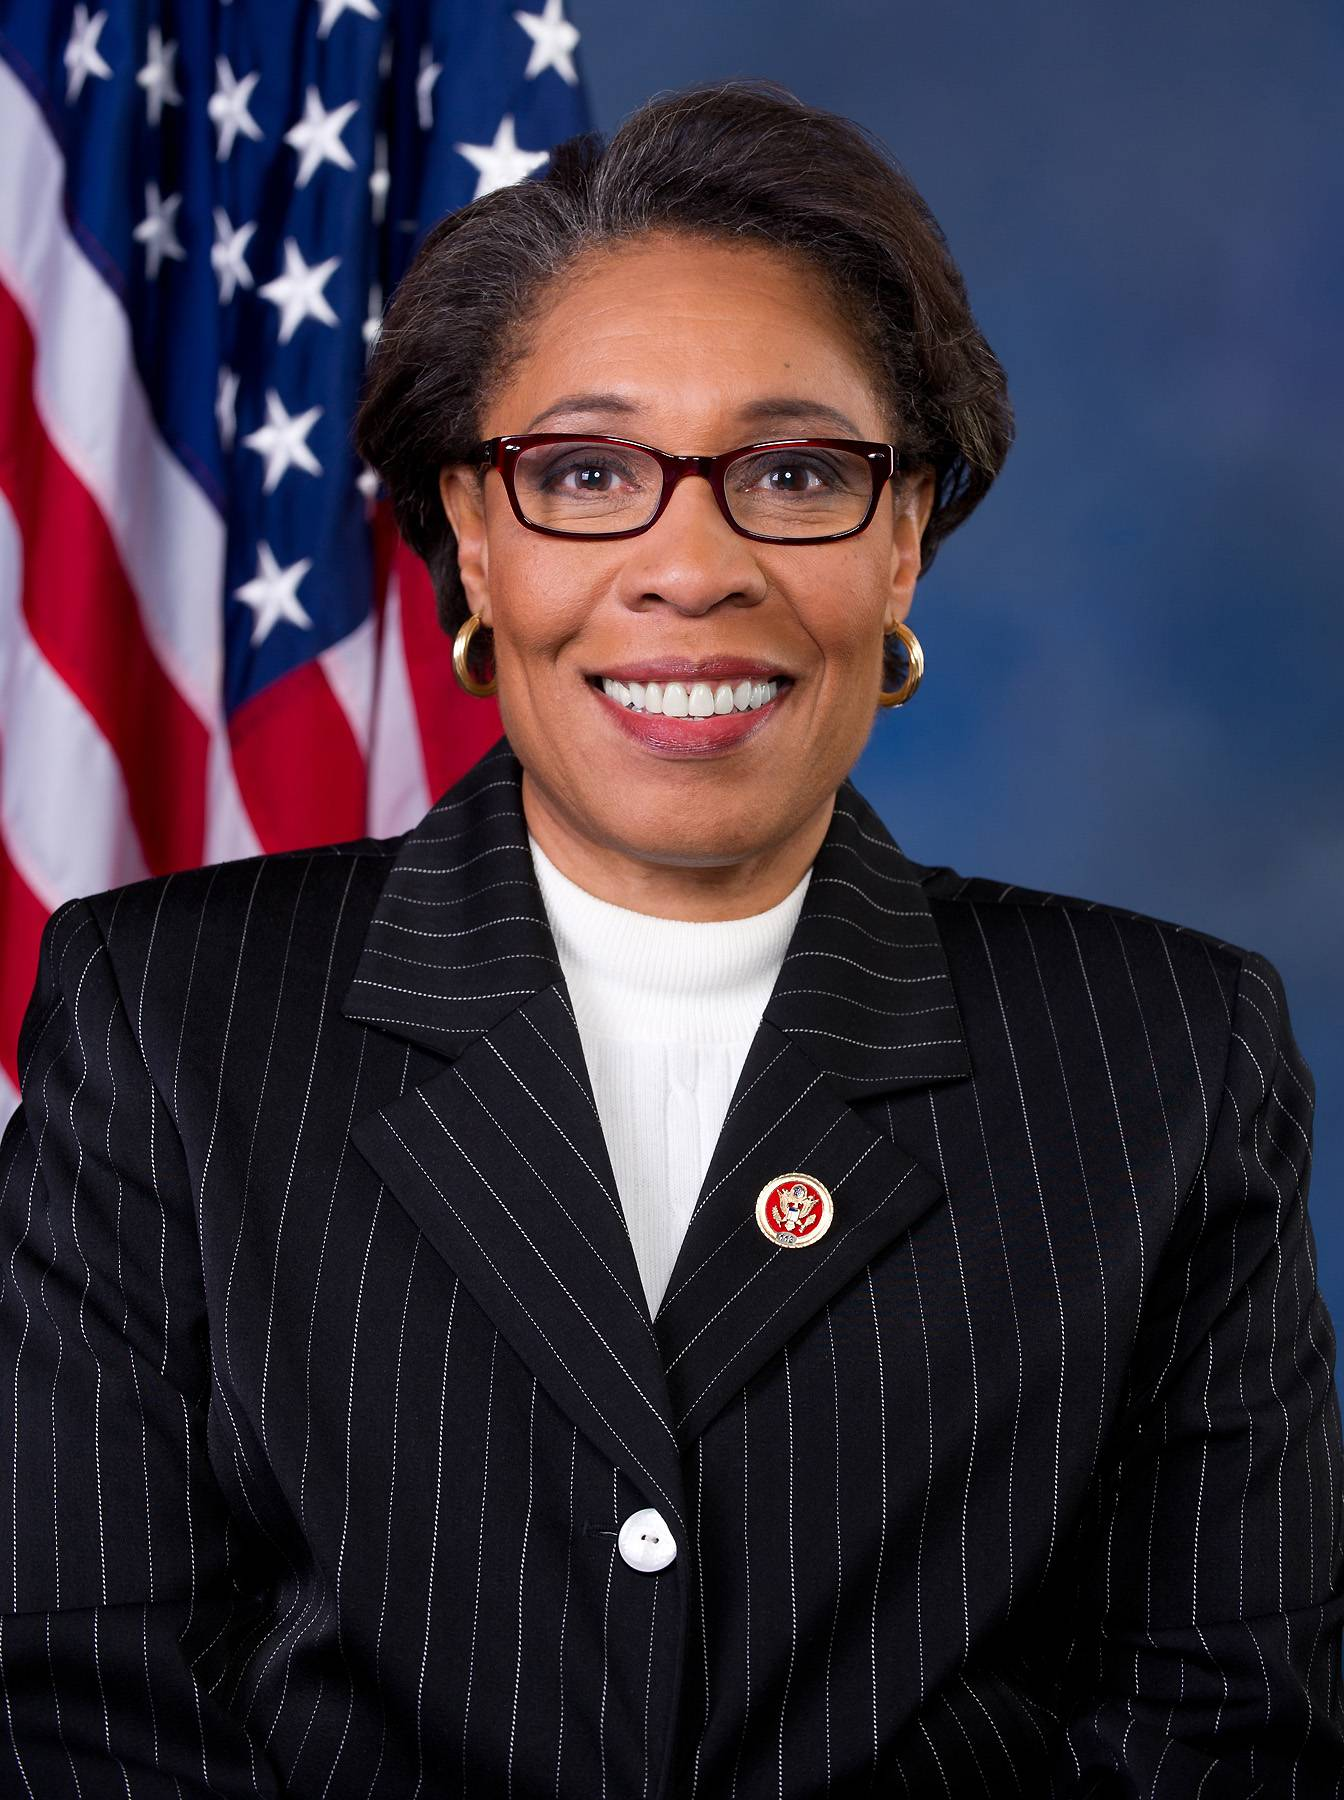 What Was She Thinking? - I won't call us rivals. We had a moment there. I decided that I wanted to run for Congress in 2011 and in my district there's only one seat [which was filled by Rep. Marcia Fudge]. Since then, she and I have repaired our relationship. She is a strong leader and chair of the Congressional Black Caucus. Sometimes in moments like that you learn a lot about yourself. I'm really happy we support each other.(Photo: Congressional Black Caucus/Official Photo, Handout)